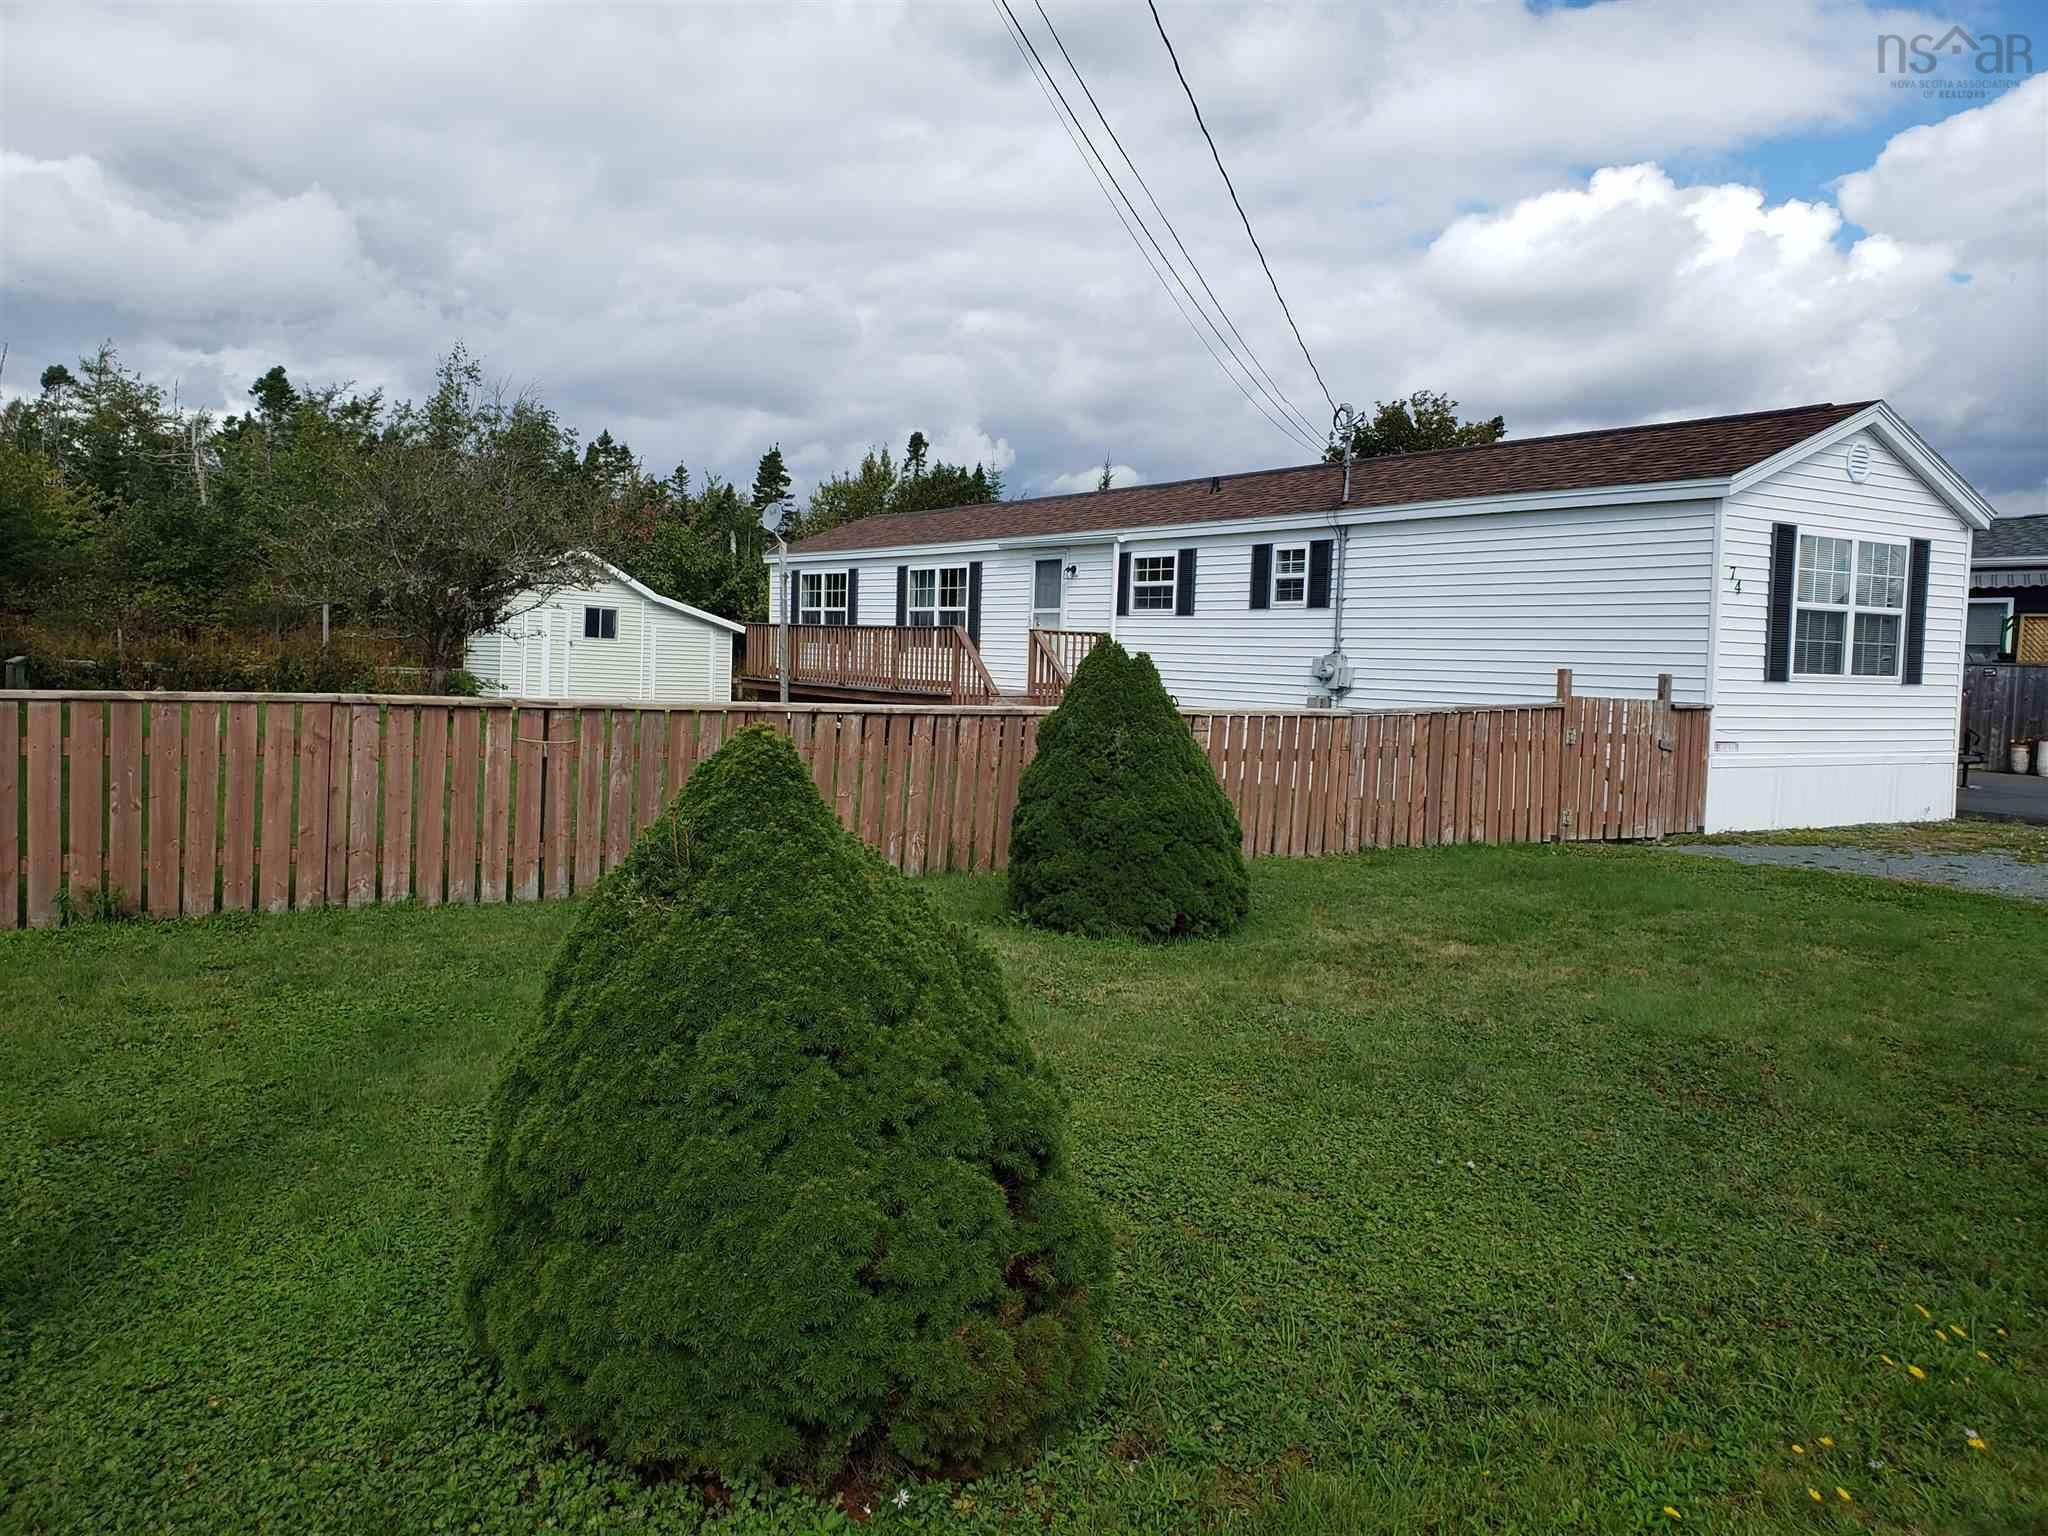 Main Photo: 74 Juniper Crescent Road in Eastern Passage: 11-Dartmouth Woodside, Eastern Passage, Cow Bay Residential for sale (Halifax-Dartmouth)  : MLS®# 202125116